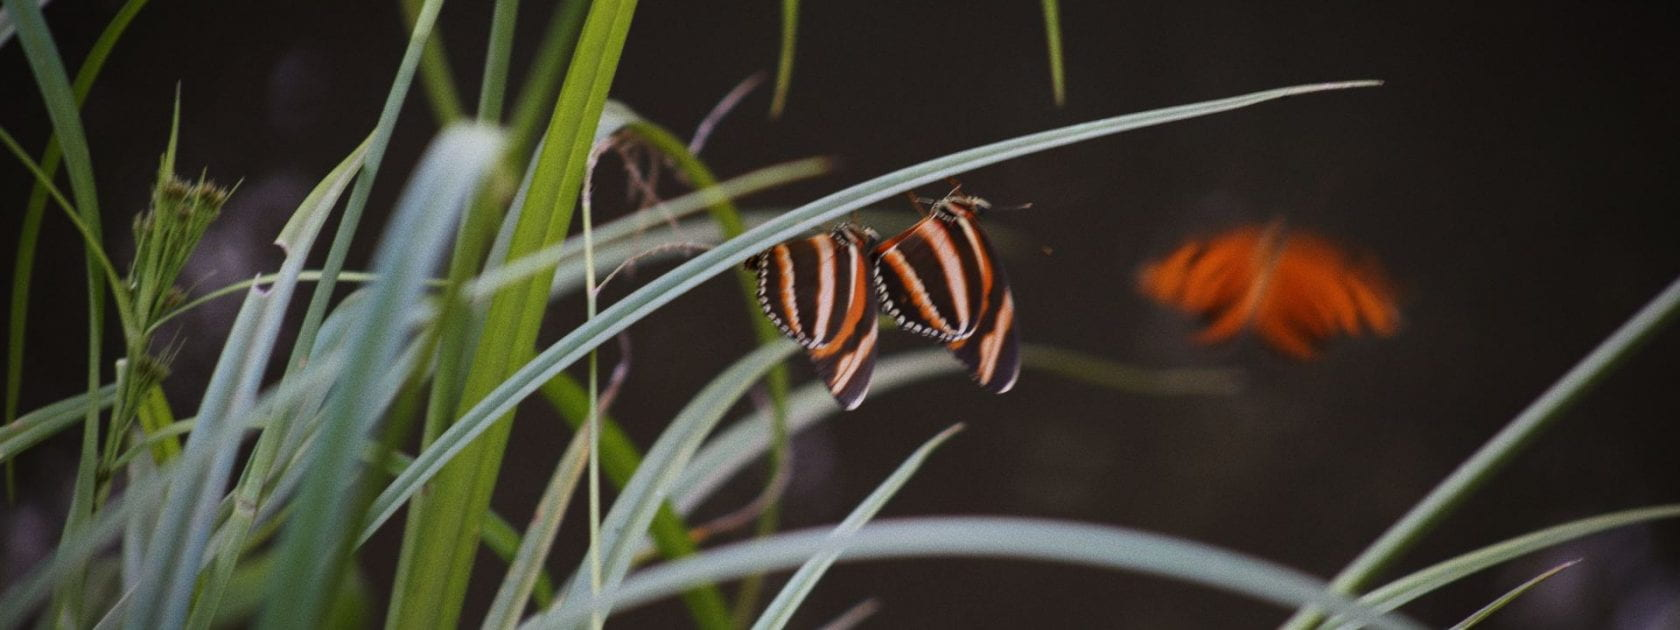 Image shows some grasses and two butterflies in bright orange and black colours.